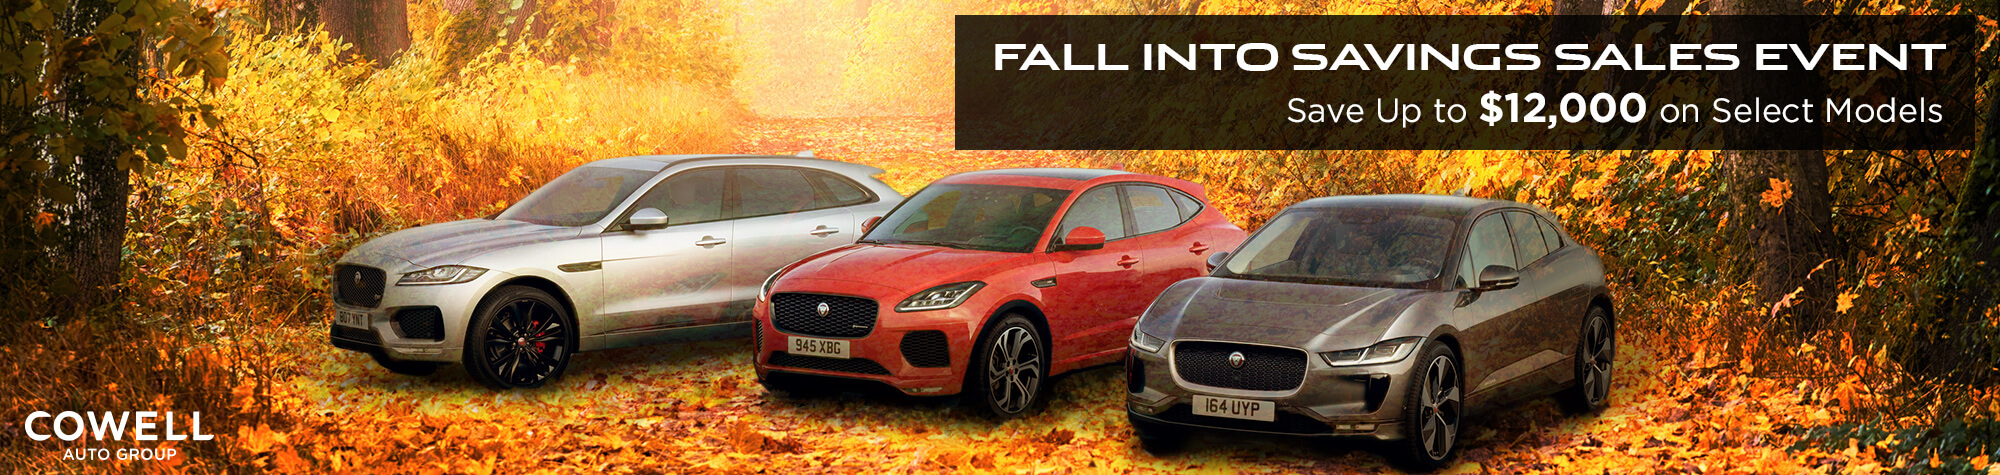 Fall into Savings Sales Event